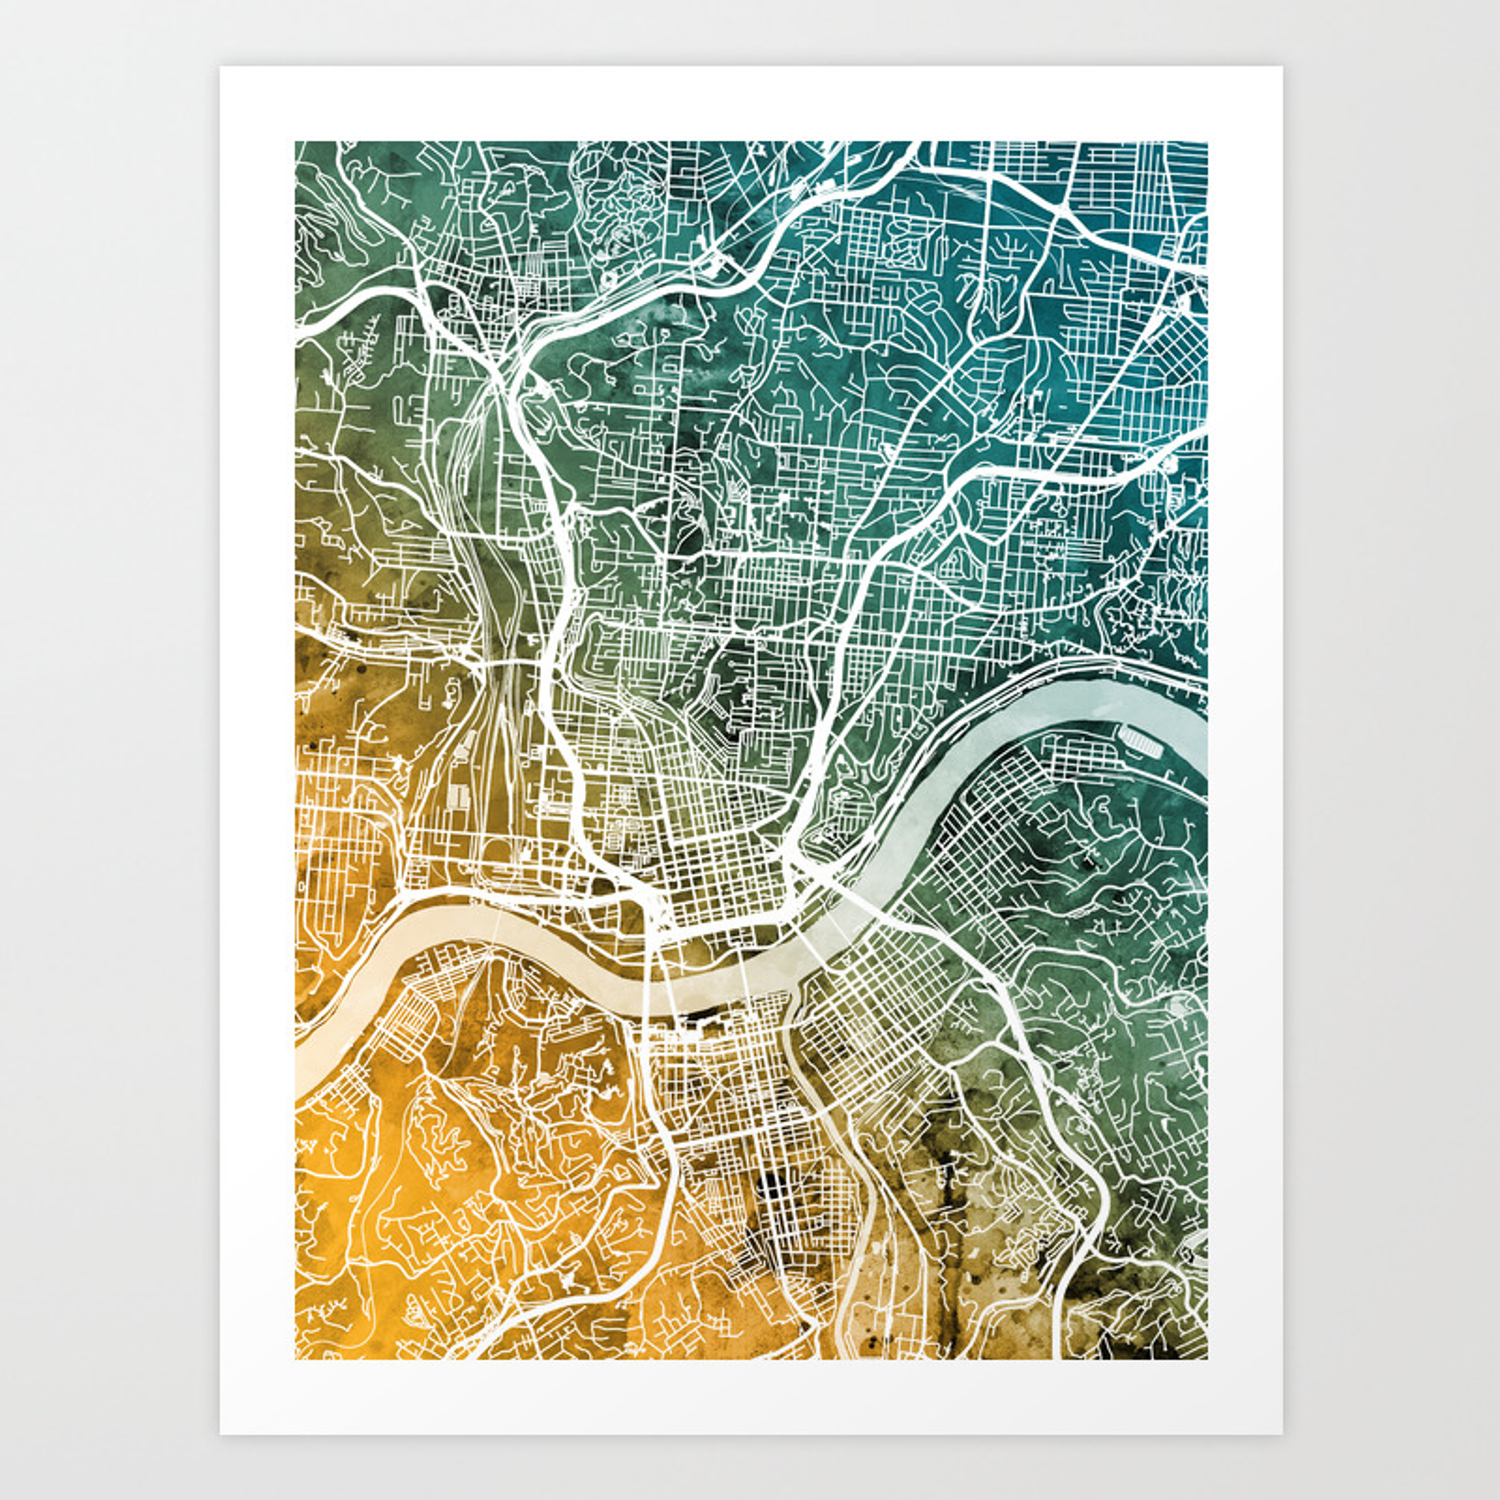 Cincinnati Ohio City Map Art Print on map travel, map de france, map in europe, map united states football league, map in india, map cornwall uk, map clip art, map heart ideas, map with mountains, map your neighborhood, map home decor, map without labels, map of usa and europe, map with states, map distance between cities, map background, map artist, map facebook covers, map recipe, map books,